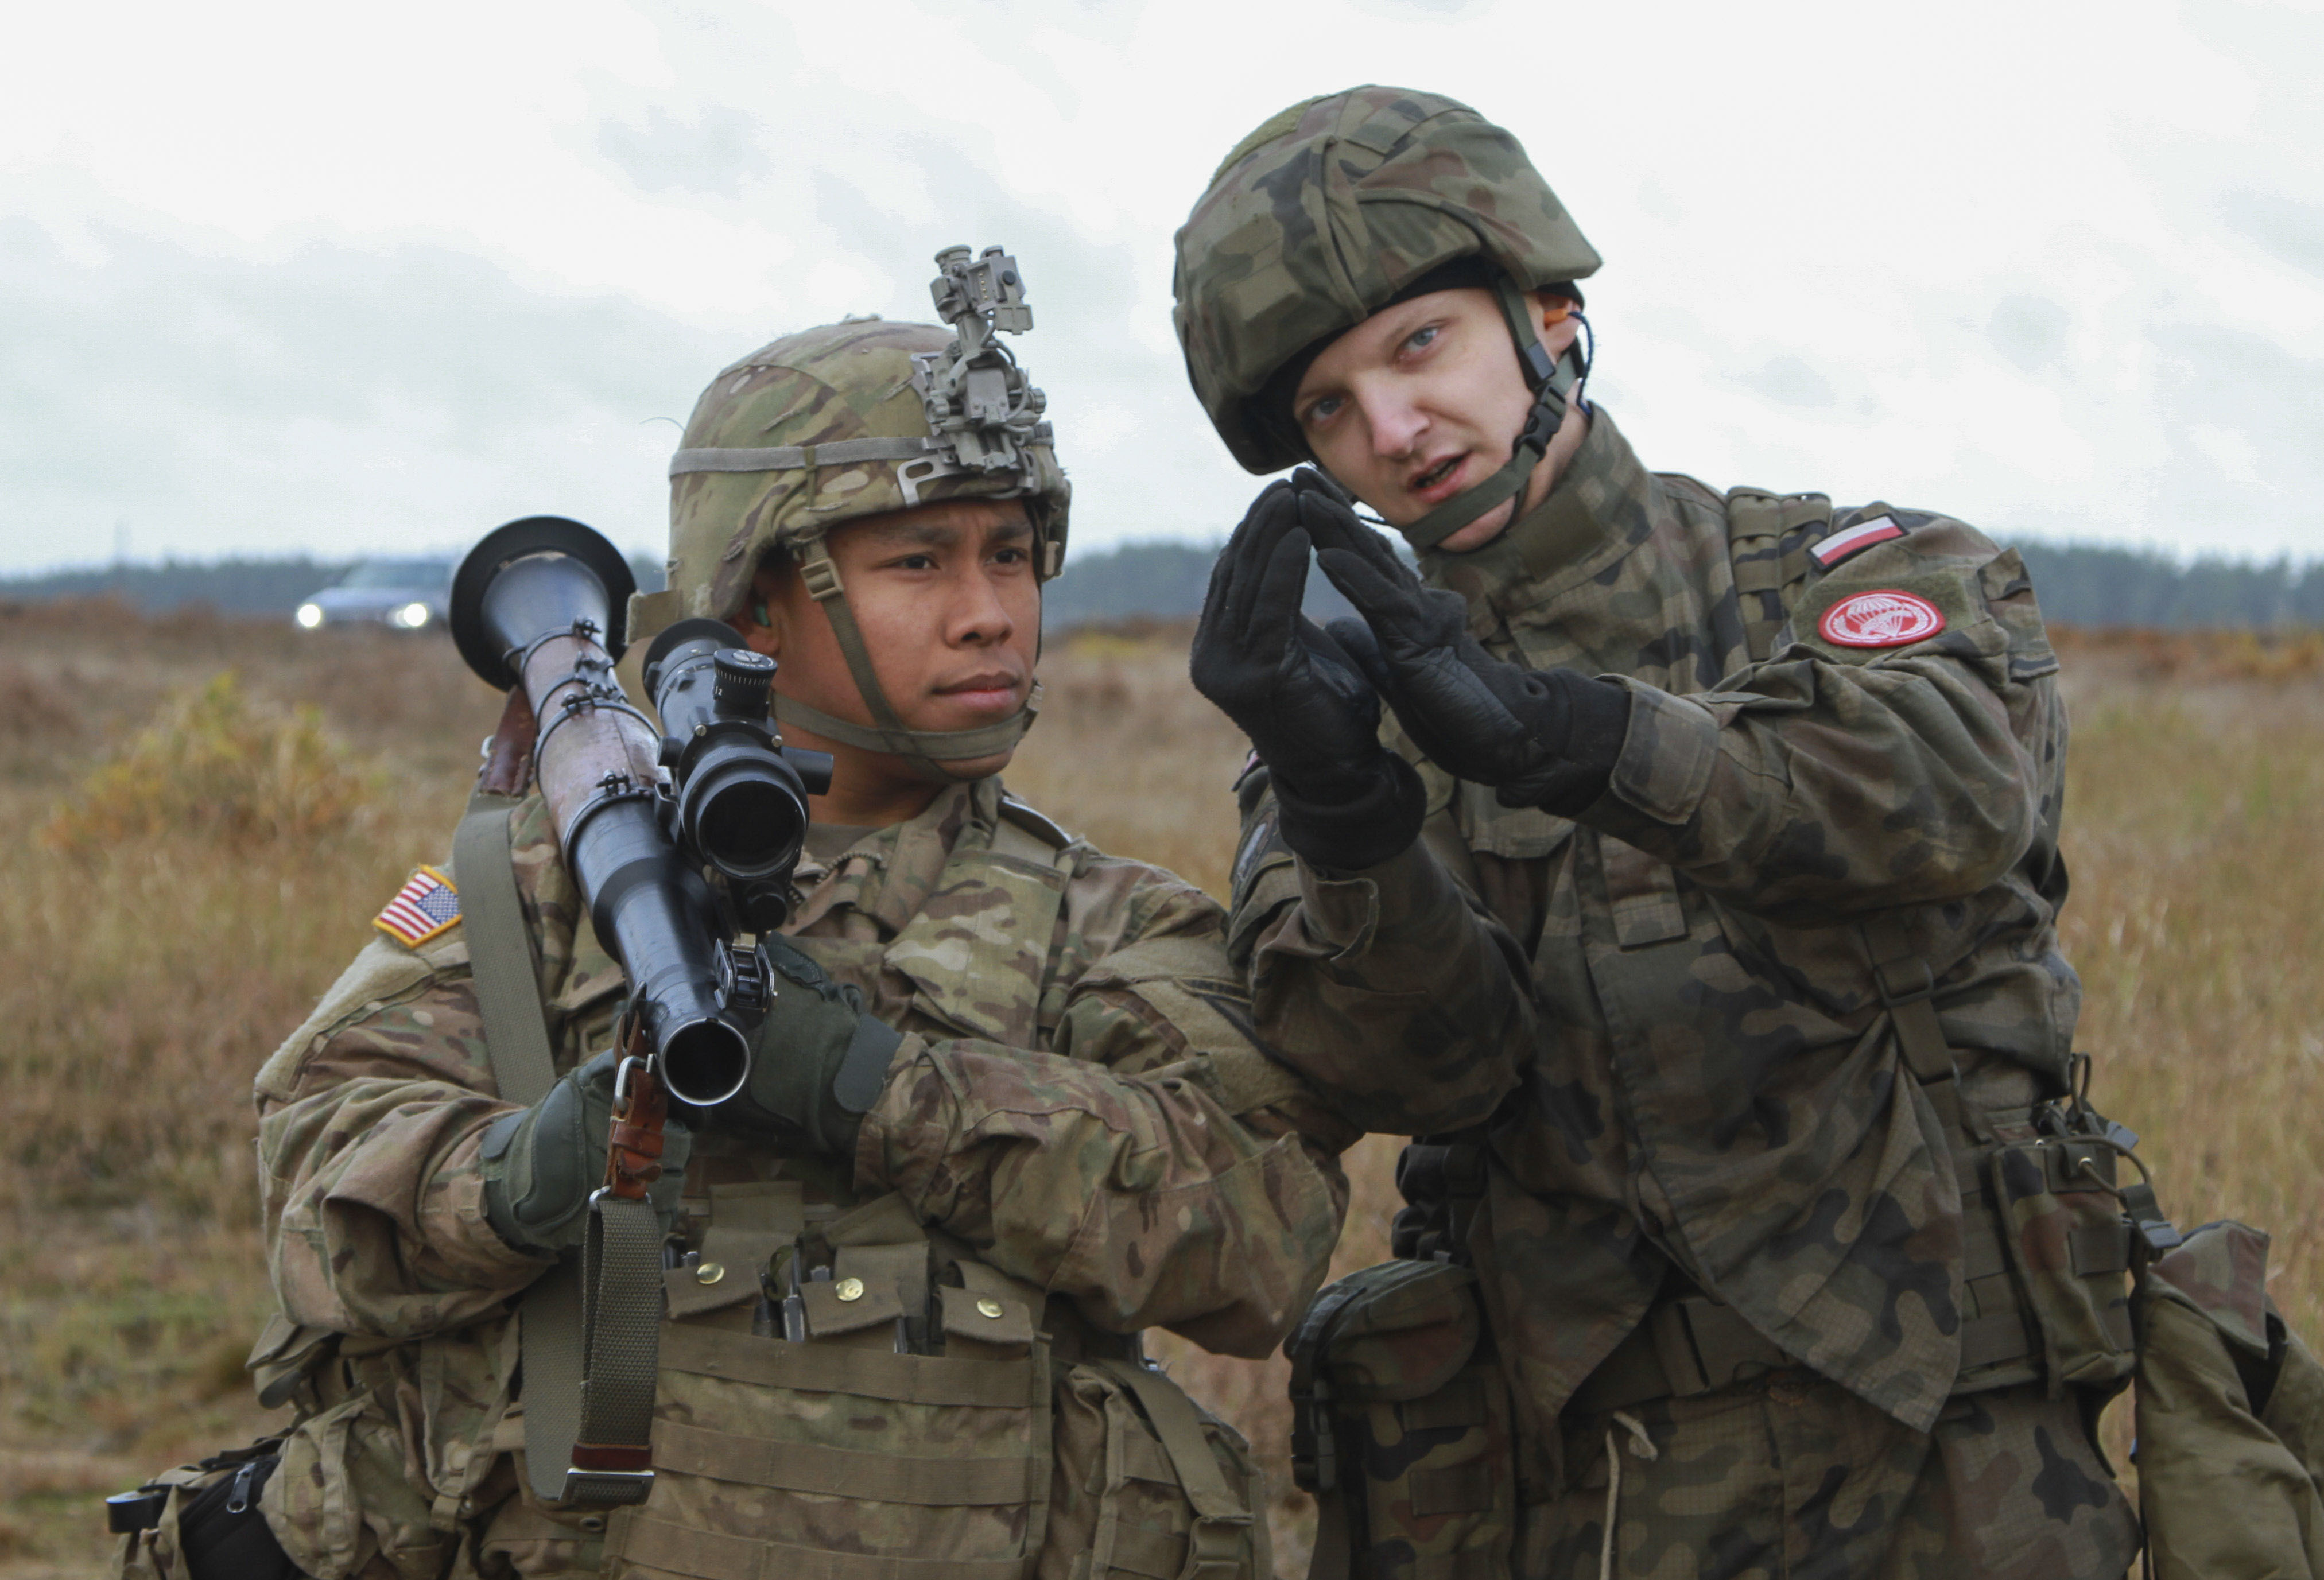 "DRAWSKO POMORSKIE, Poland – Spc. Jacob Quitugua, Paratrooper, Company D, 2nd Battalion, 503rd Infantry Regiment, 173rd Airborne Brigade, holds an RPG-7D Anti-Tank Grenade Launcher while Polish Pvt. Paweł Tylek, paratrooper, 16th Polish Airborne Battalion, 6th Airborne Brigade, describes the proper sight picture of the weapon during anti-tank training in Studnica, Poland, Oct. 29, 2016. The training provided both U.S. and Polish forces cross training on the M136 AT4 anti-tank weapon and the RPG-7D Anti-Tank Grenade Launcher. The ""Sky Soldiers"" of D Co., 2nd Bn., 503rd Inf. Regt., are on a training rotation in support of Operation Atlantic Resolve, a U.S. led effort in Eastern Europe that demonstrates U.S. commitment to the collective security of NATO and dedication to enduring peace and stability in the region. (U.S. Army photo by Sgt. Lauren Harrah/Released)"